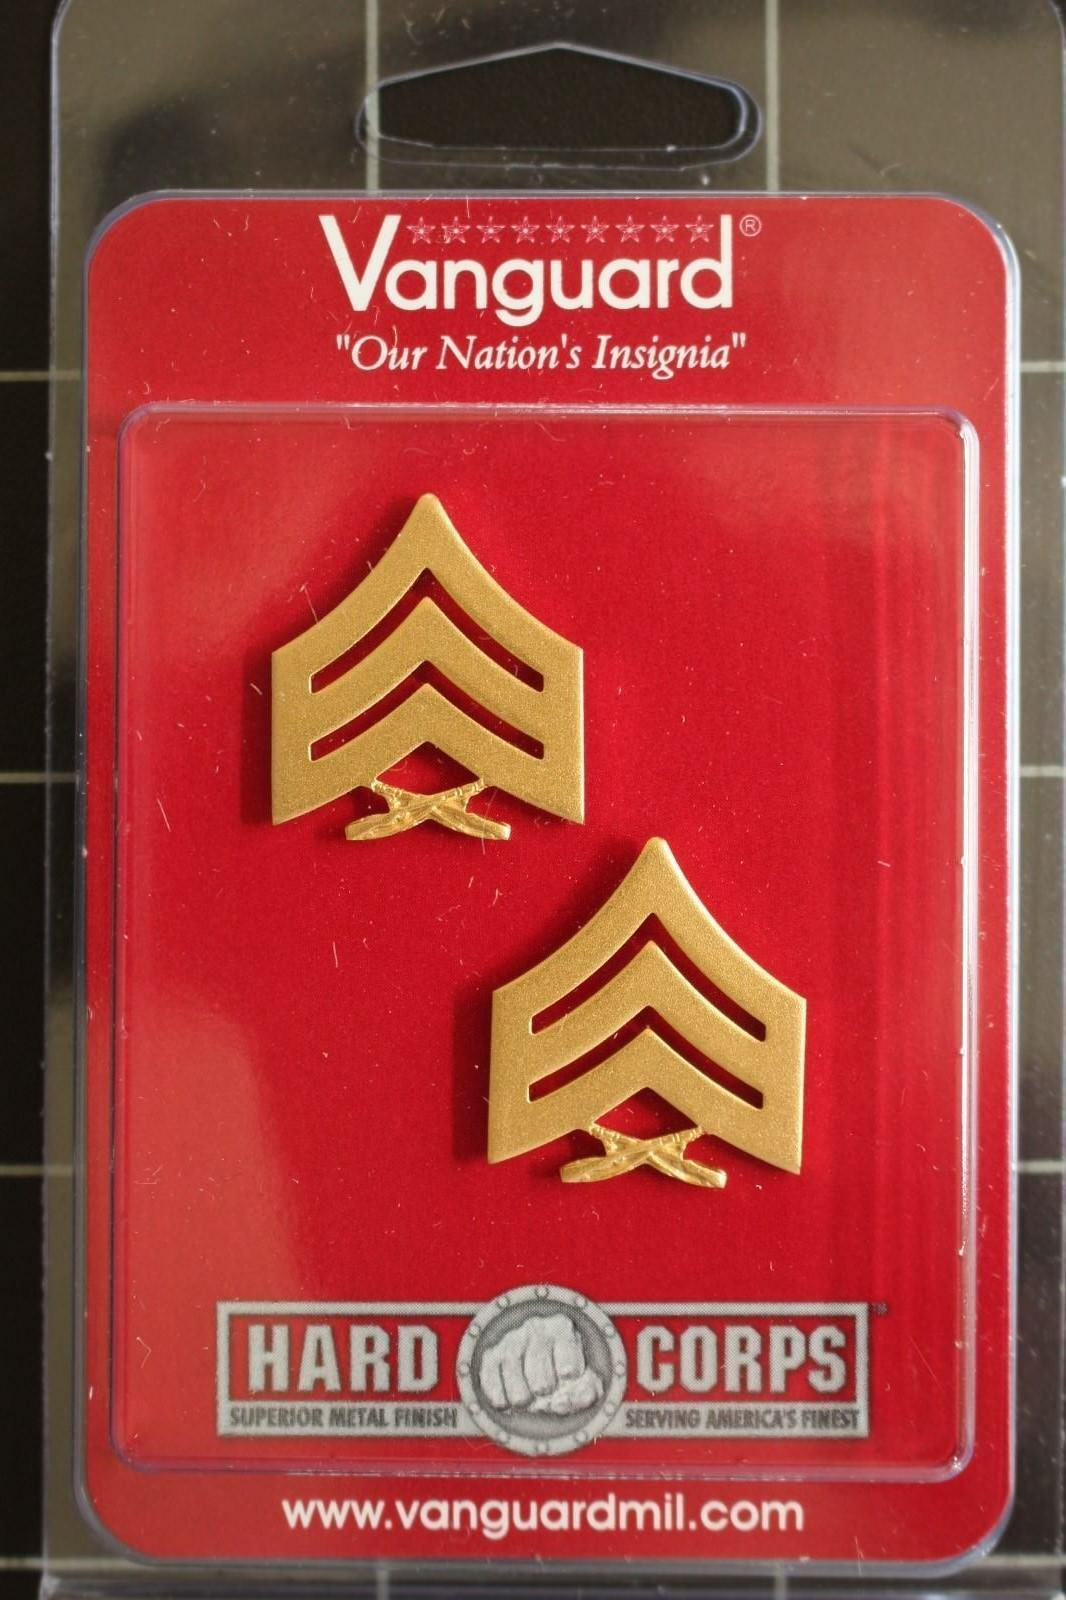 VANGUARD USMC OFFICER 2ND LT COLLAR DEVICE 1 PAIR GOLD SUBDUED